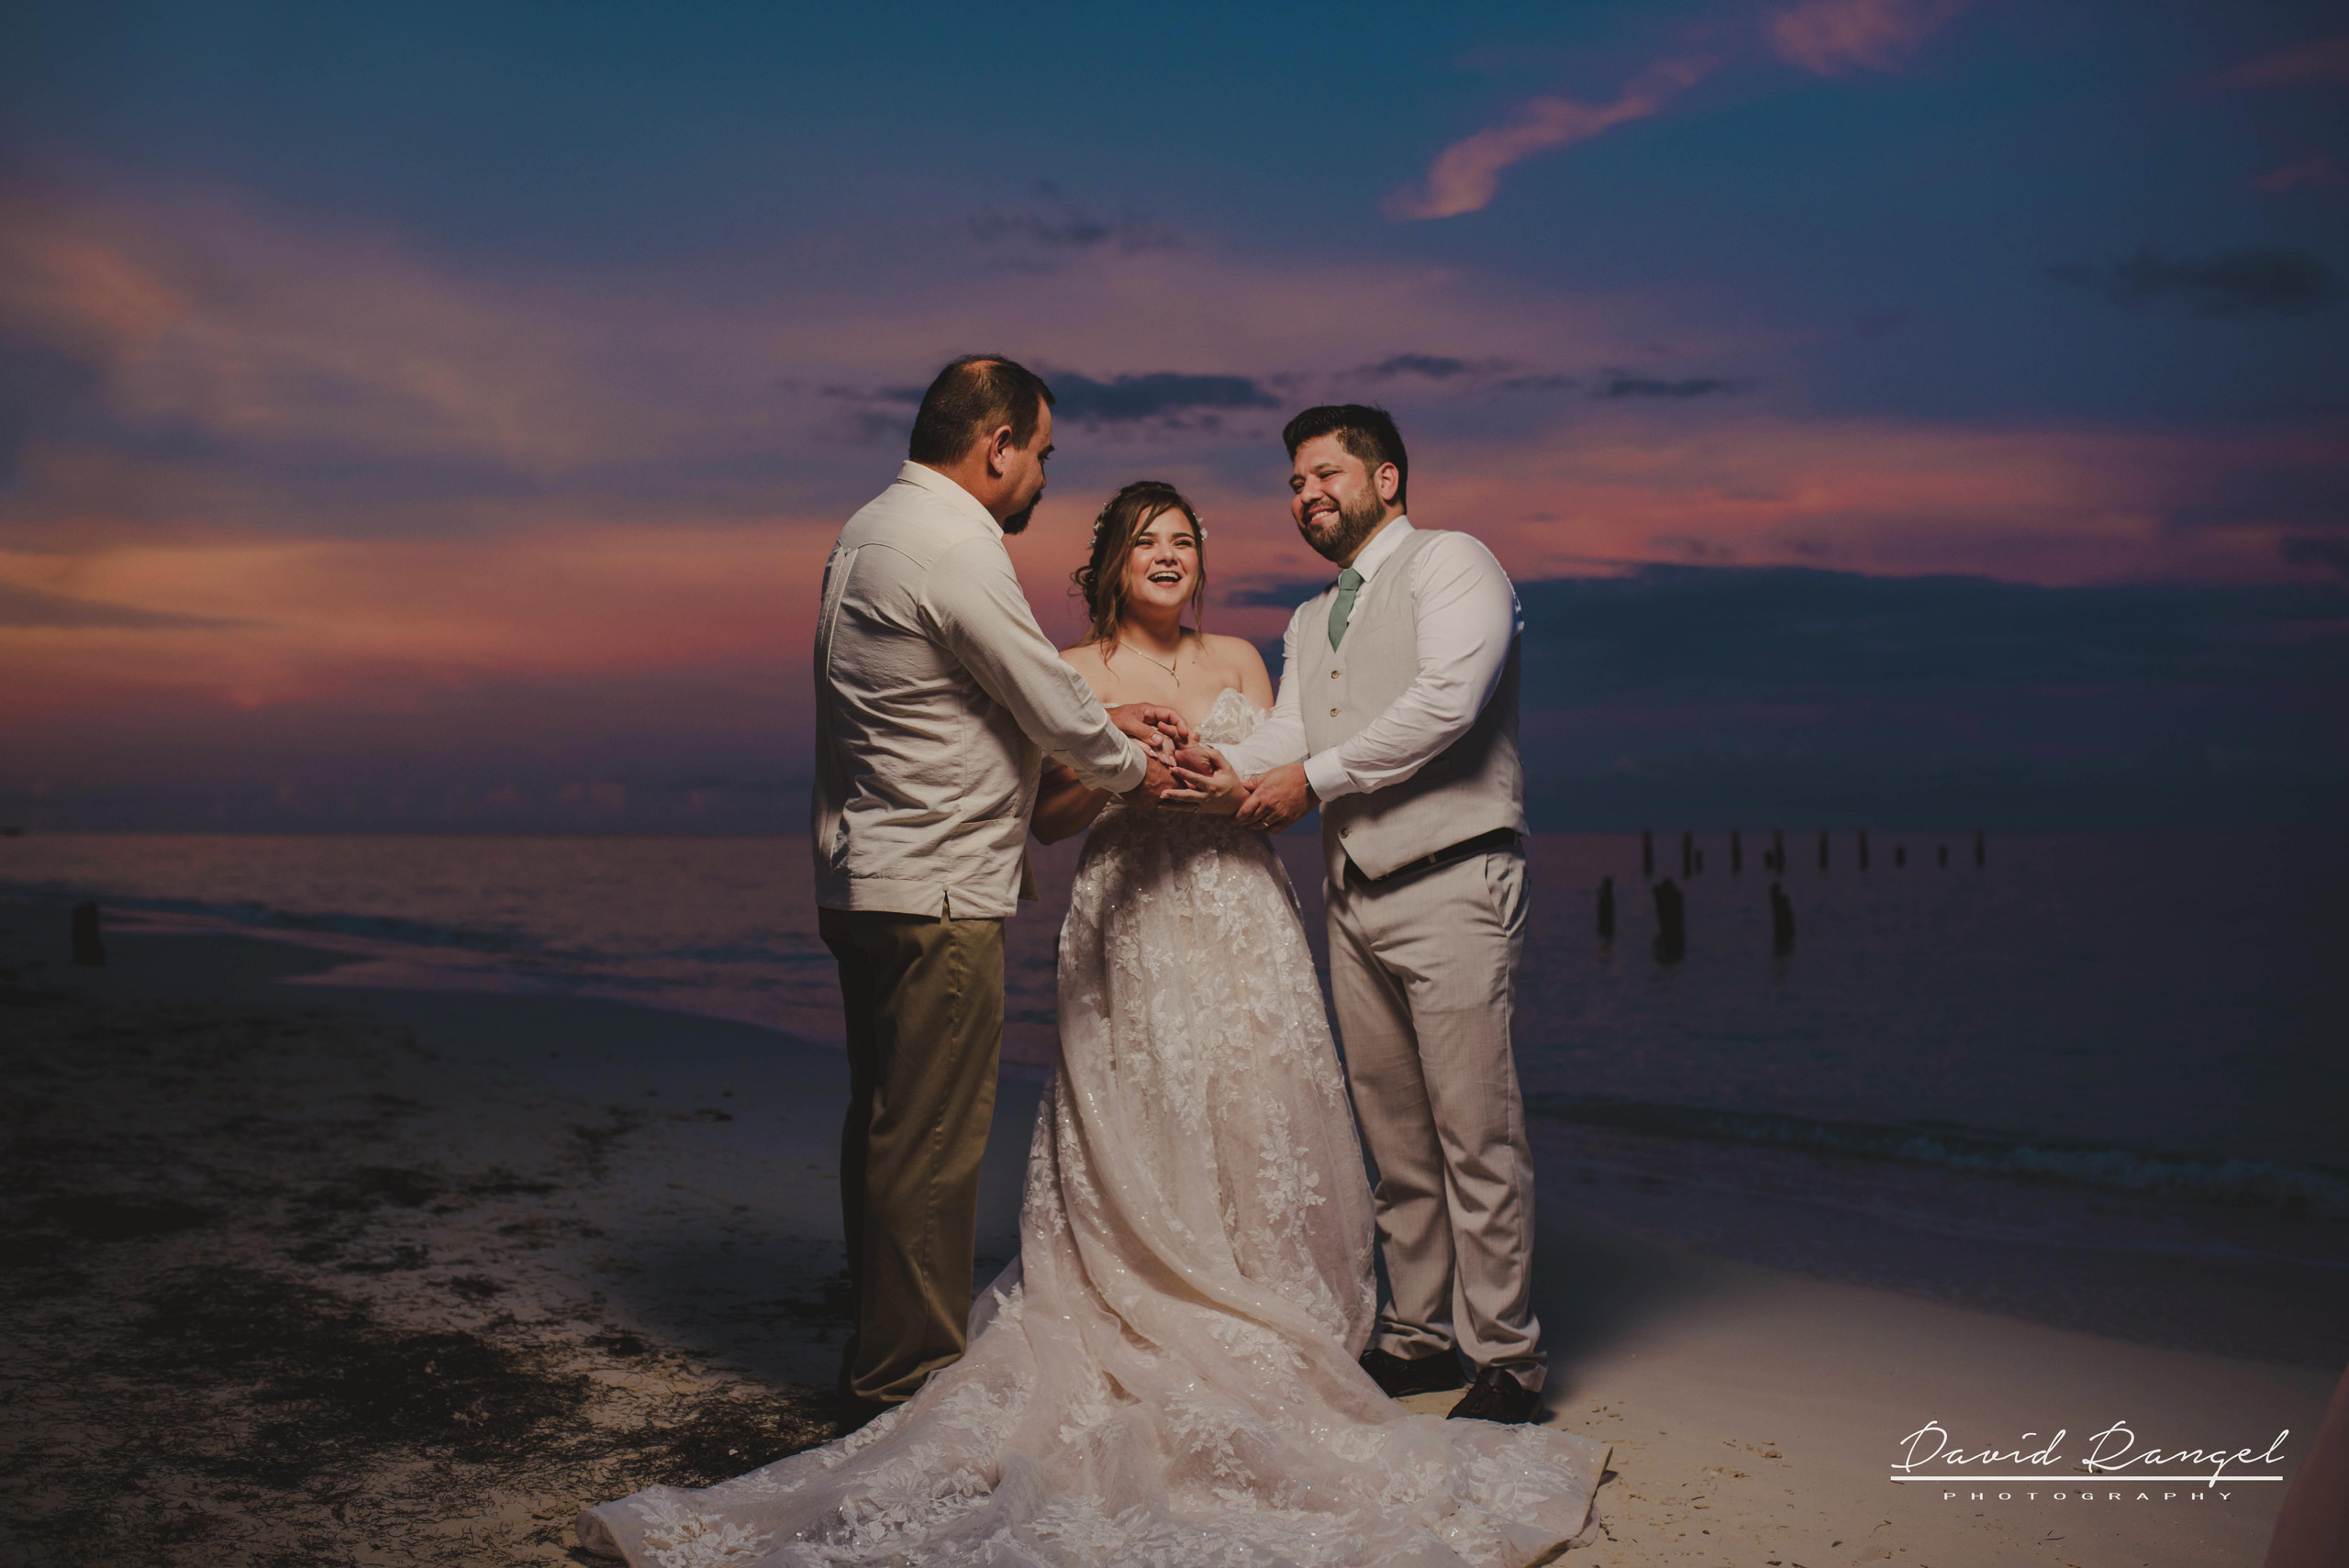 bride+groom+beach+sunset+session+happy+love+couple+celebration+wedding+photo+beach+caribean+sea+photographer+david+rangel+dress+suit+villa+chenera